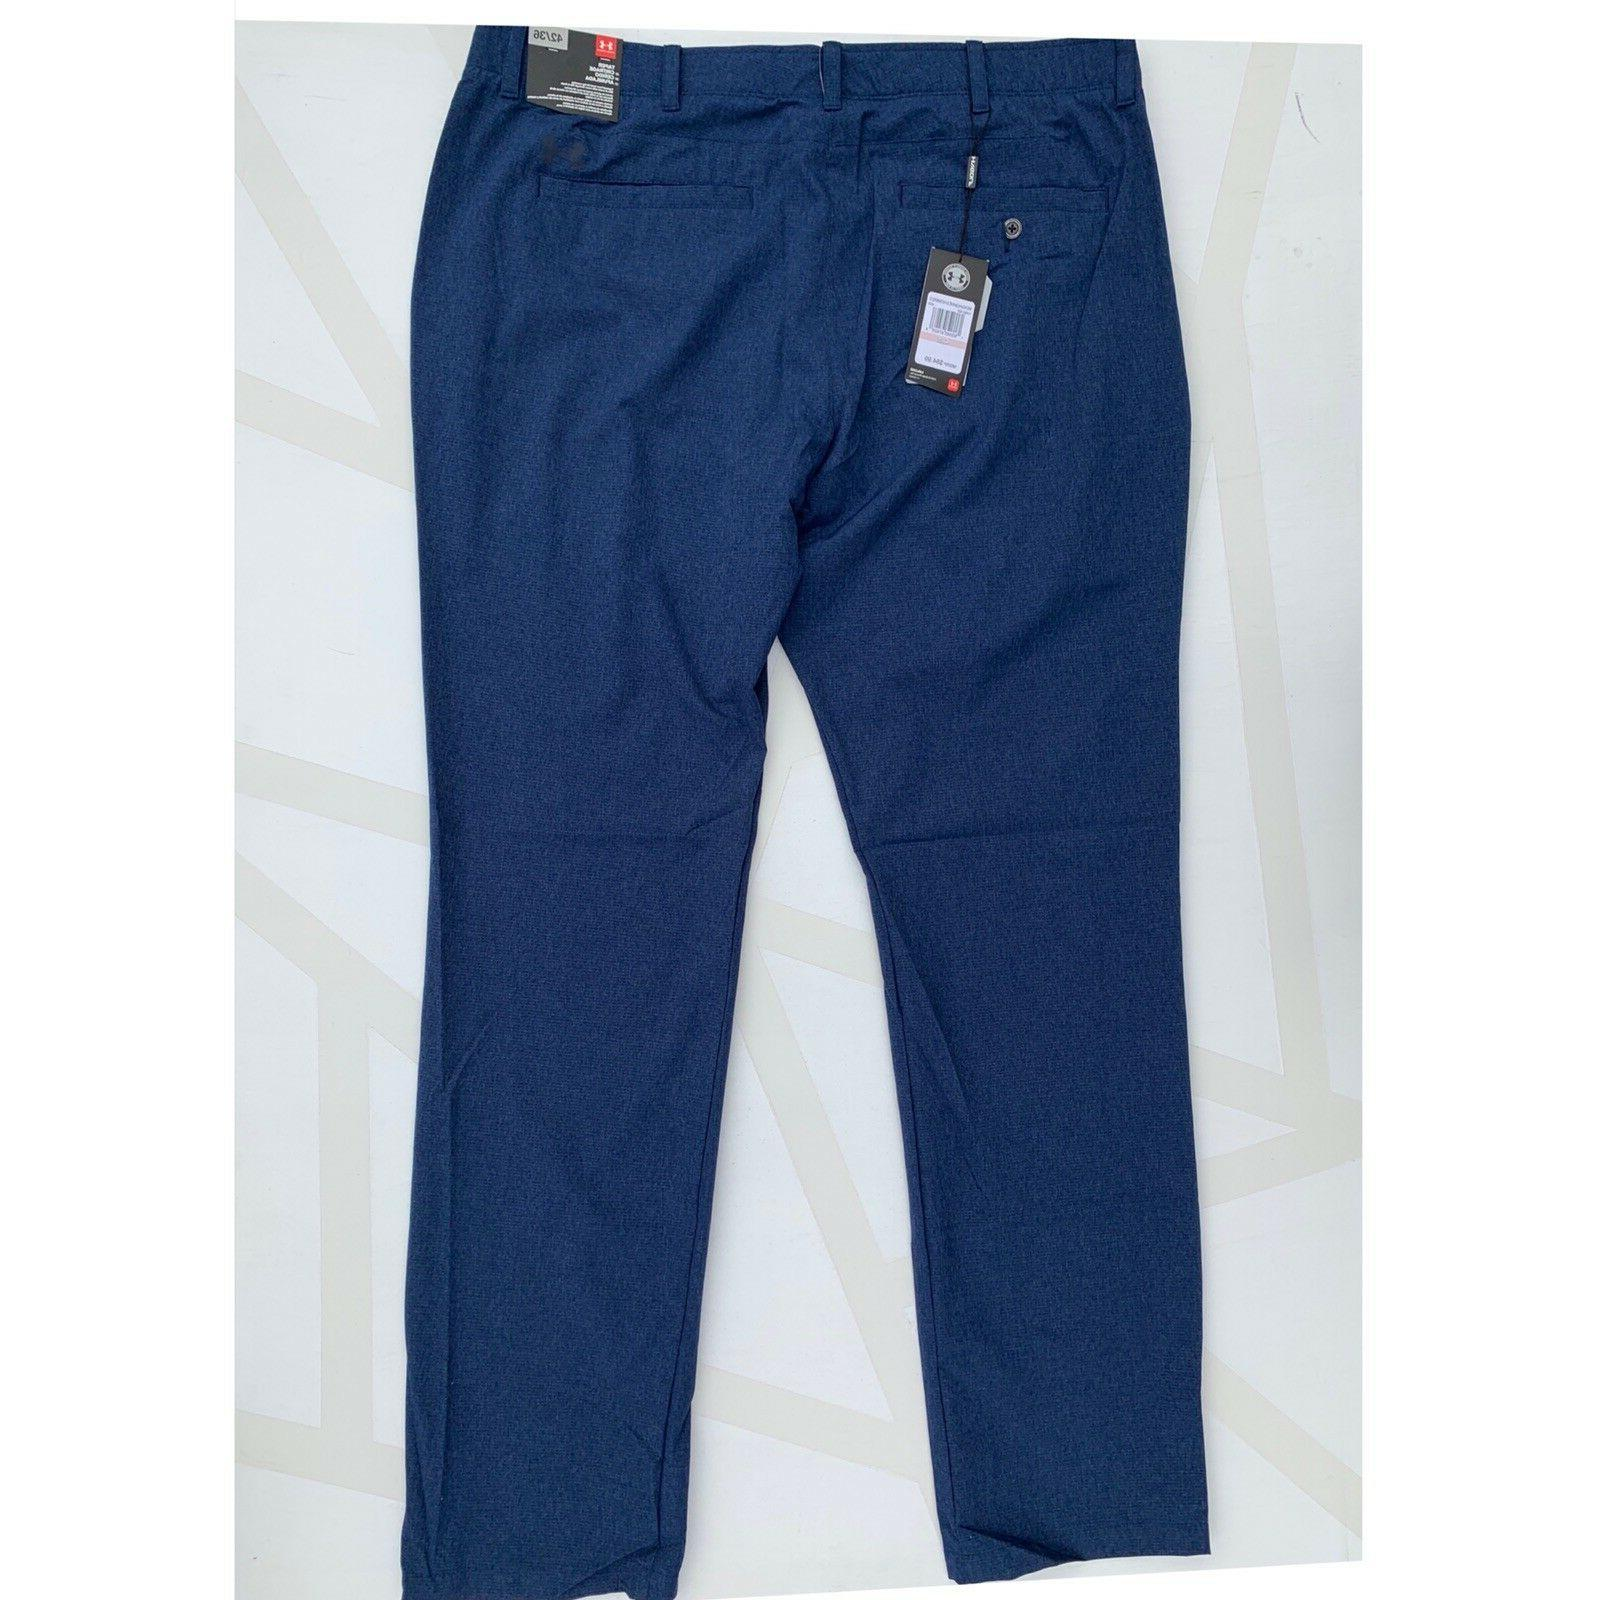 NEW Under Size Loose Fit Match Play Pants Navy Blue